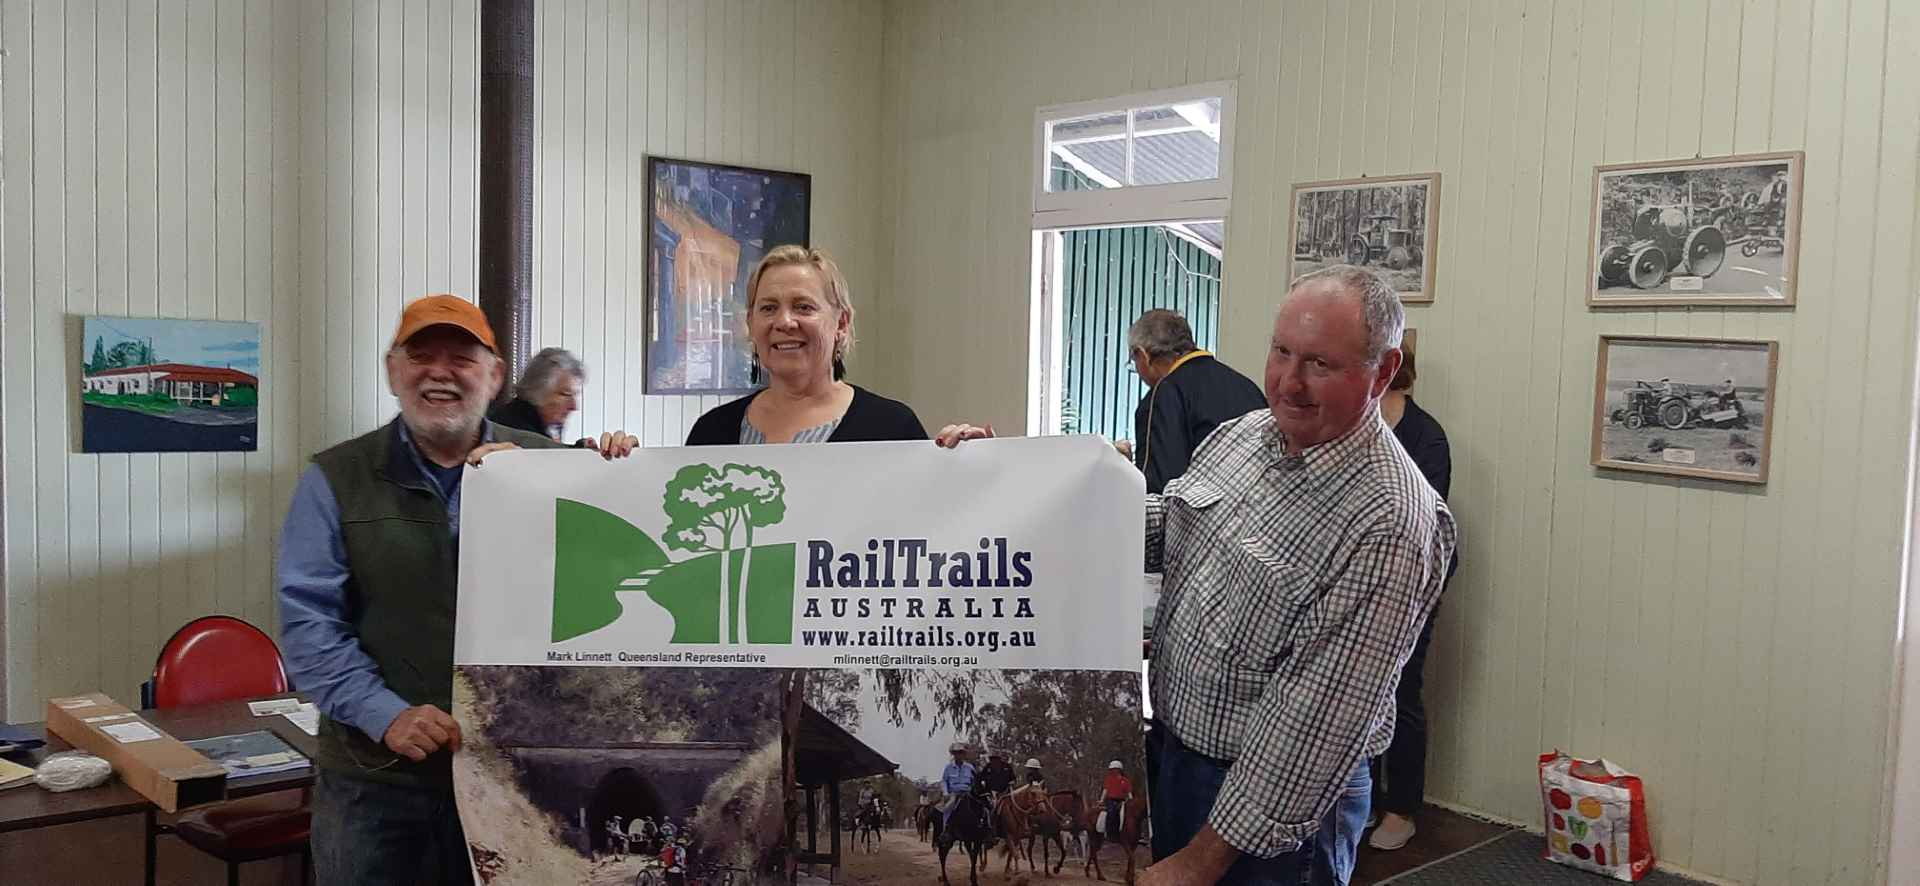 Councillor Desley O'Grady, Mick Colyer, Mike Goebel holding up a Rail Trail banner